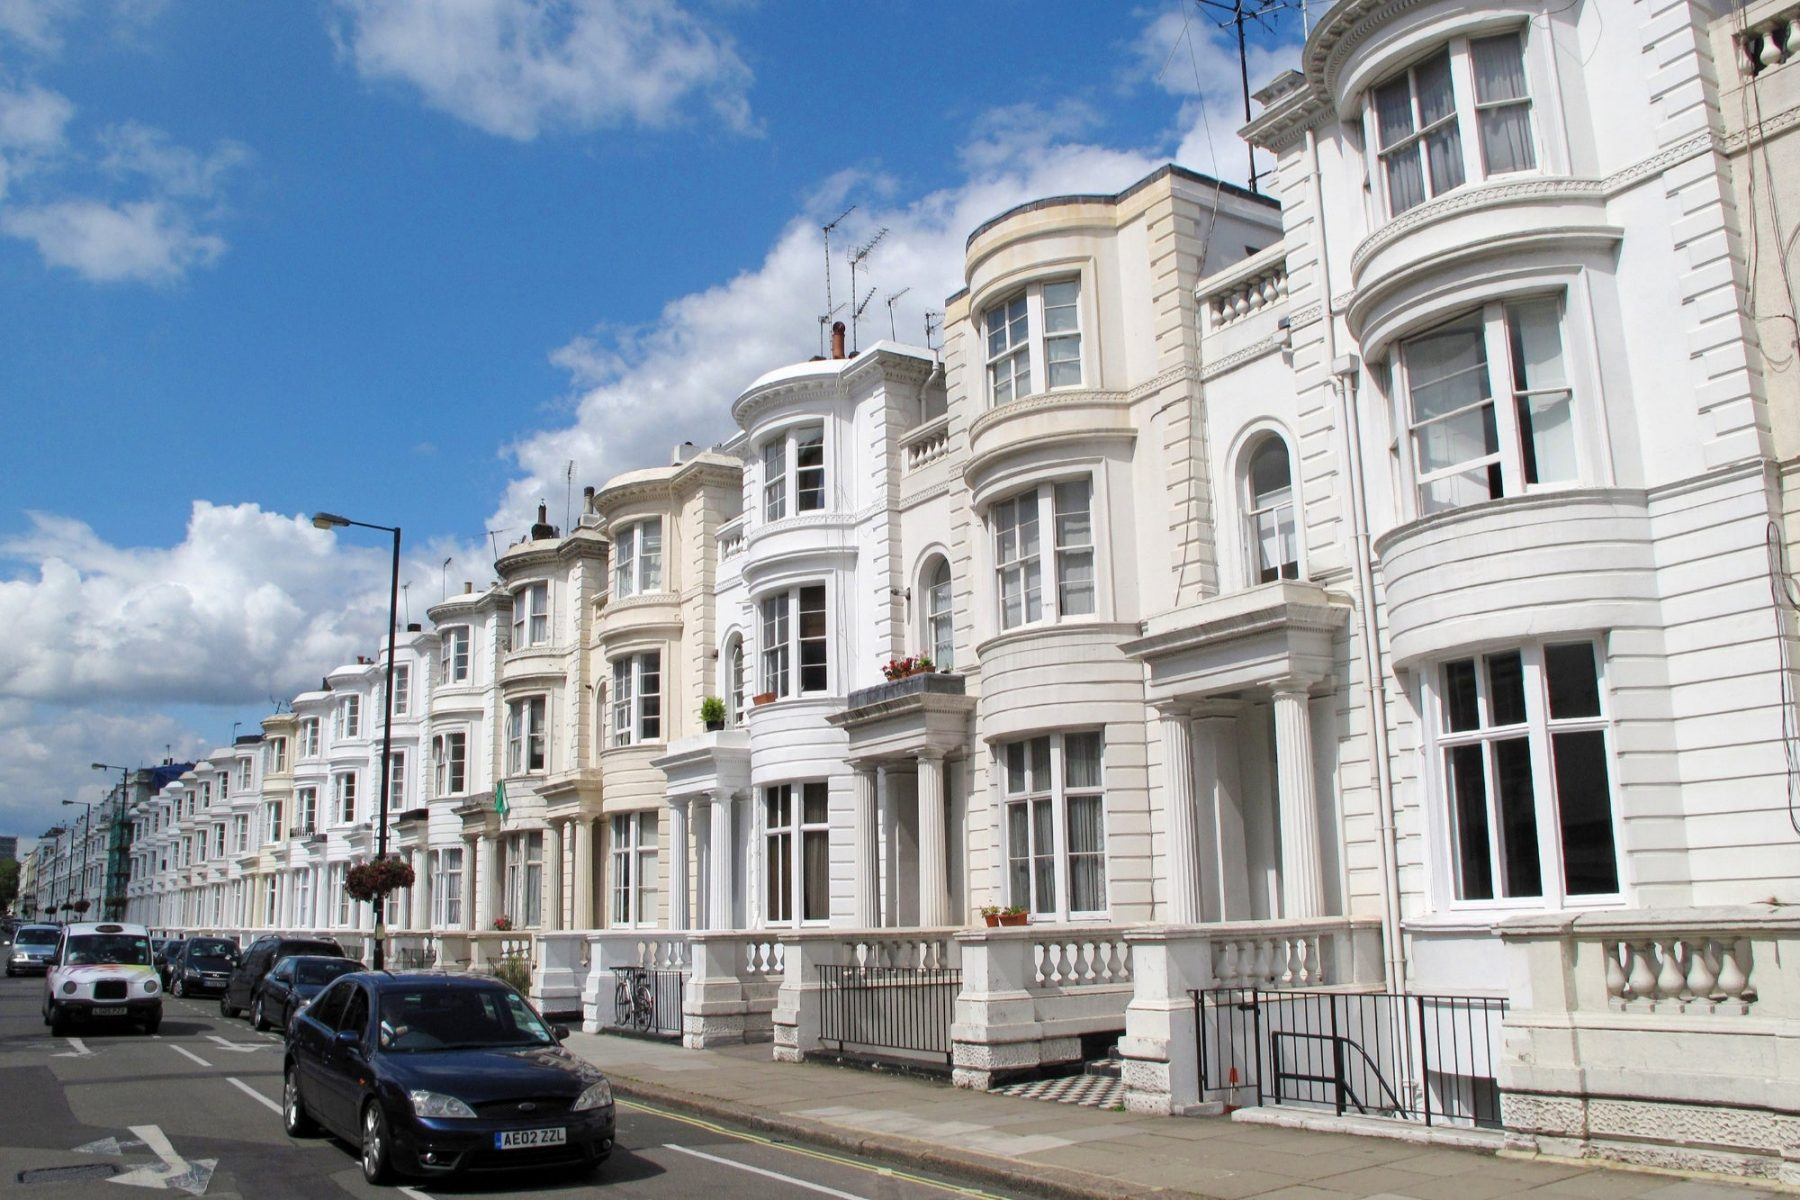 3-reasons-to-love-the-uk.-residential-property-market